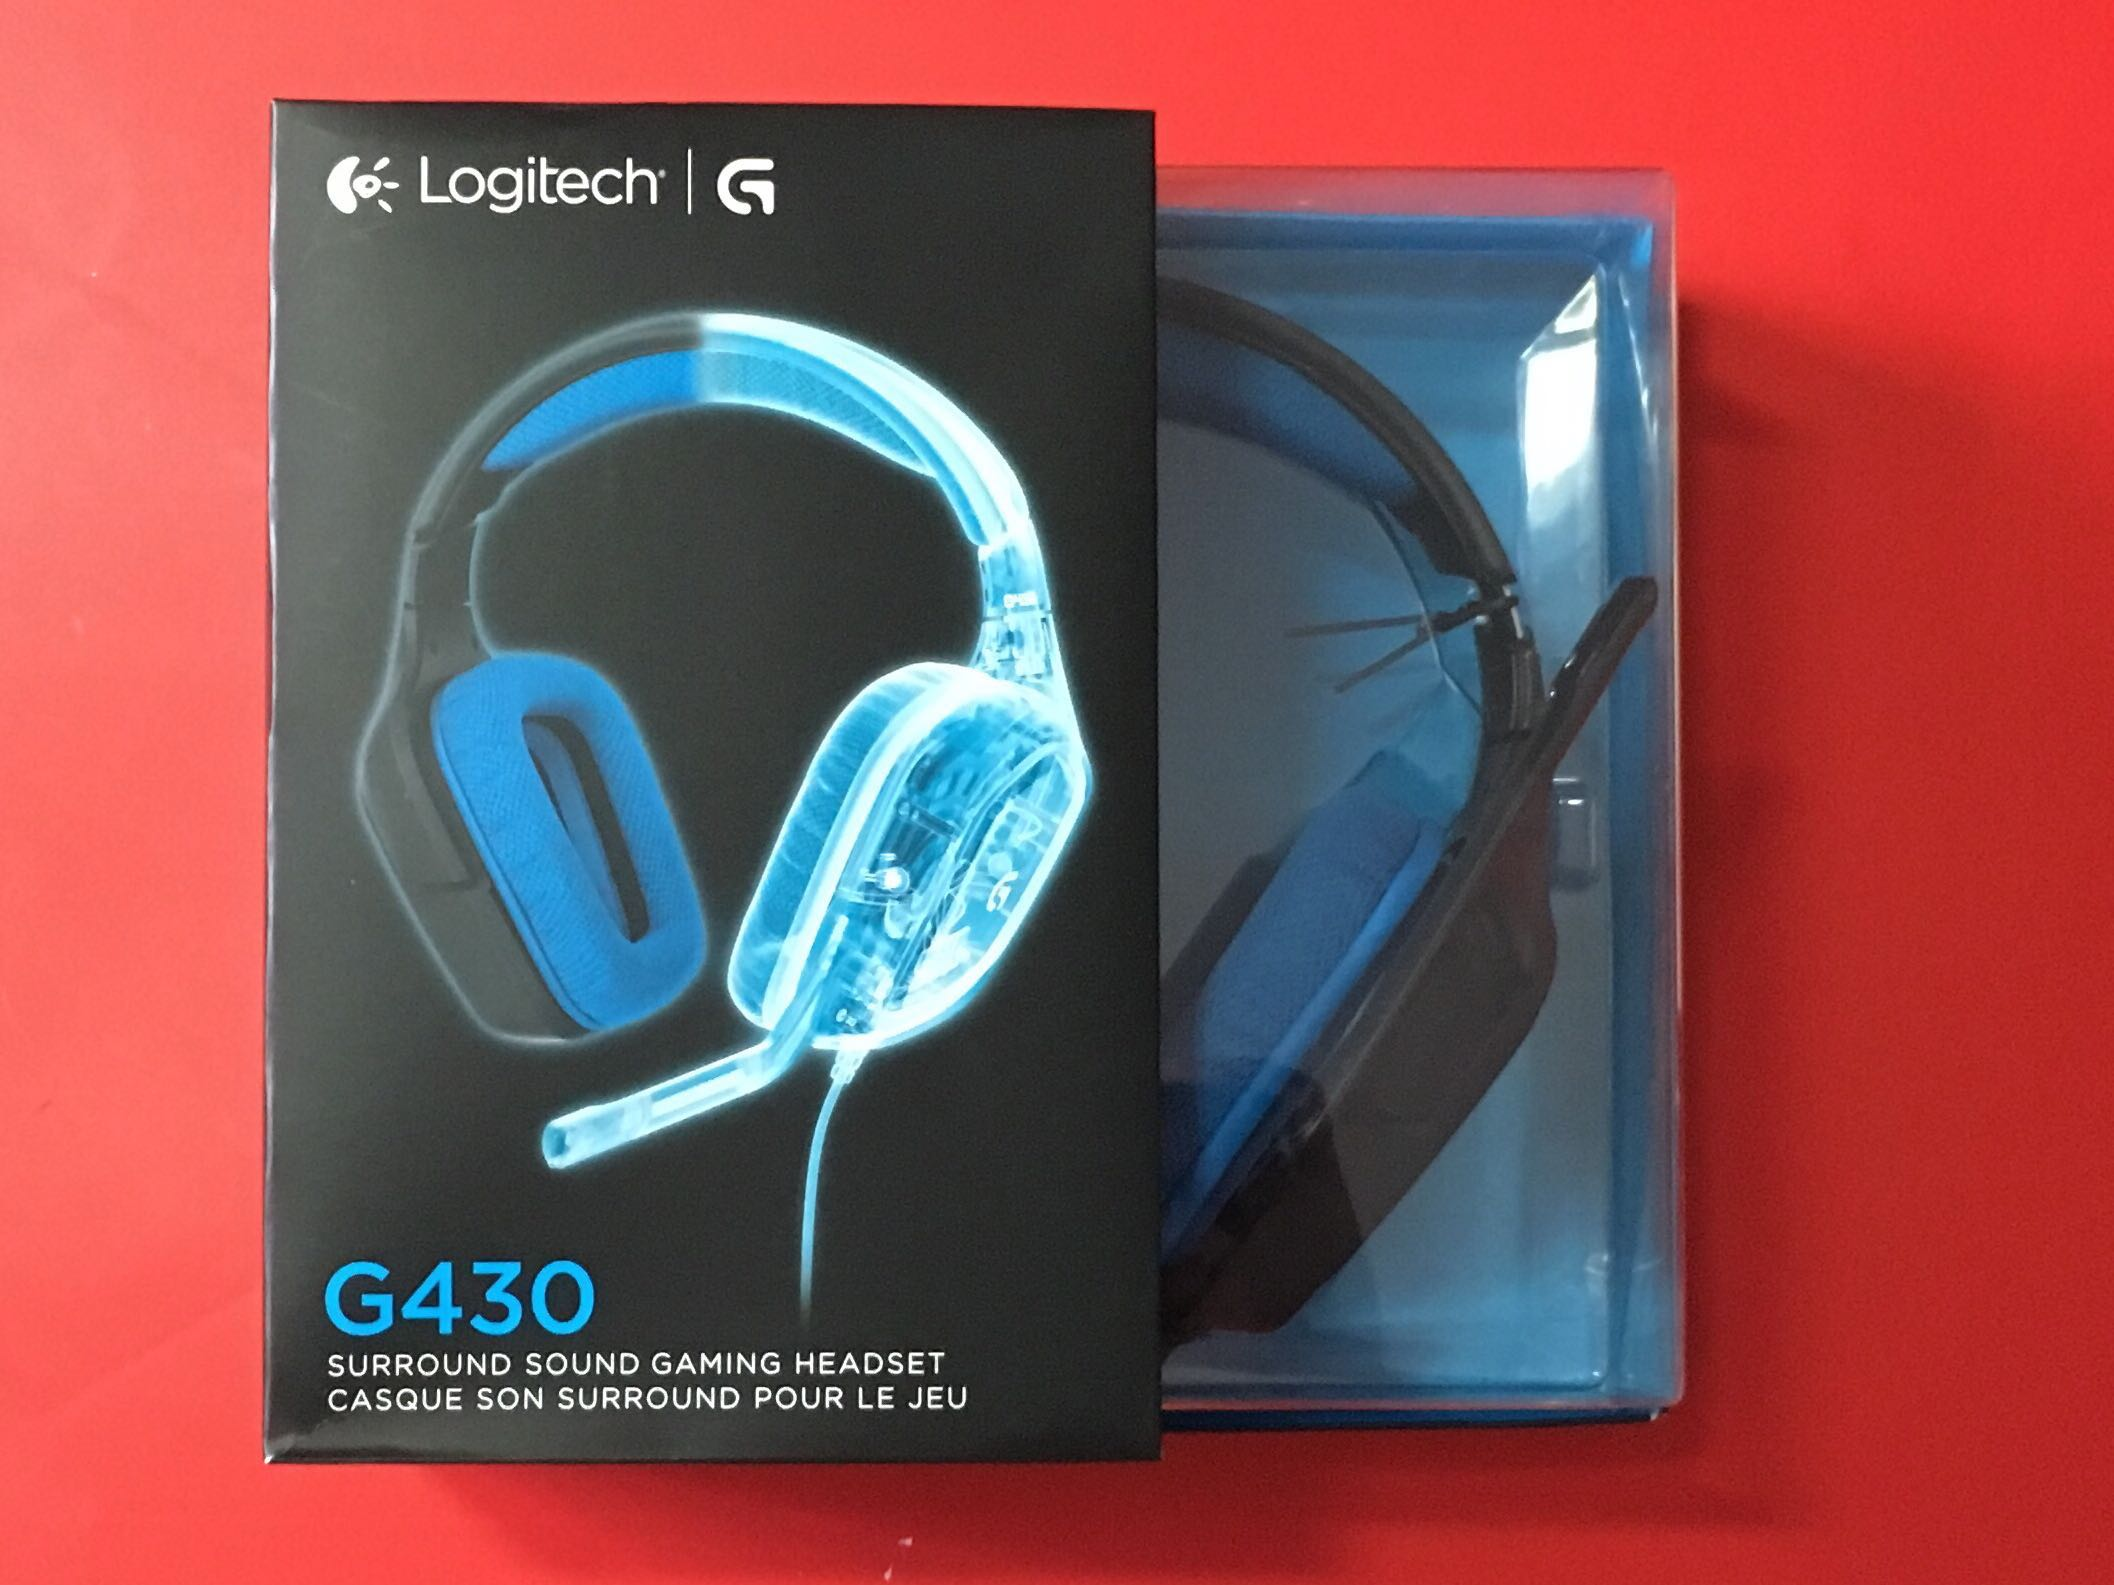 Logitech G430 71 Dts Headphone X And Dolby Surround Sound Gaming